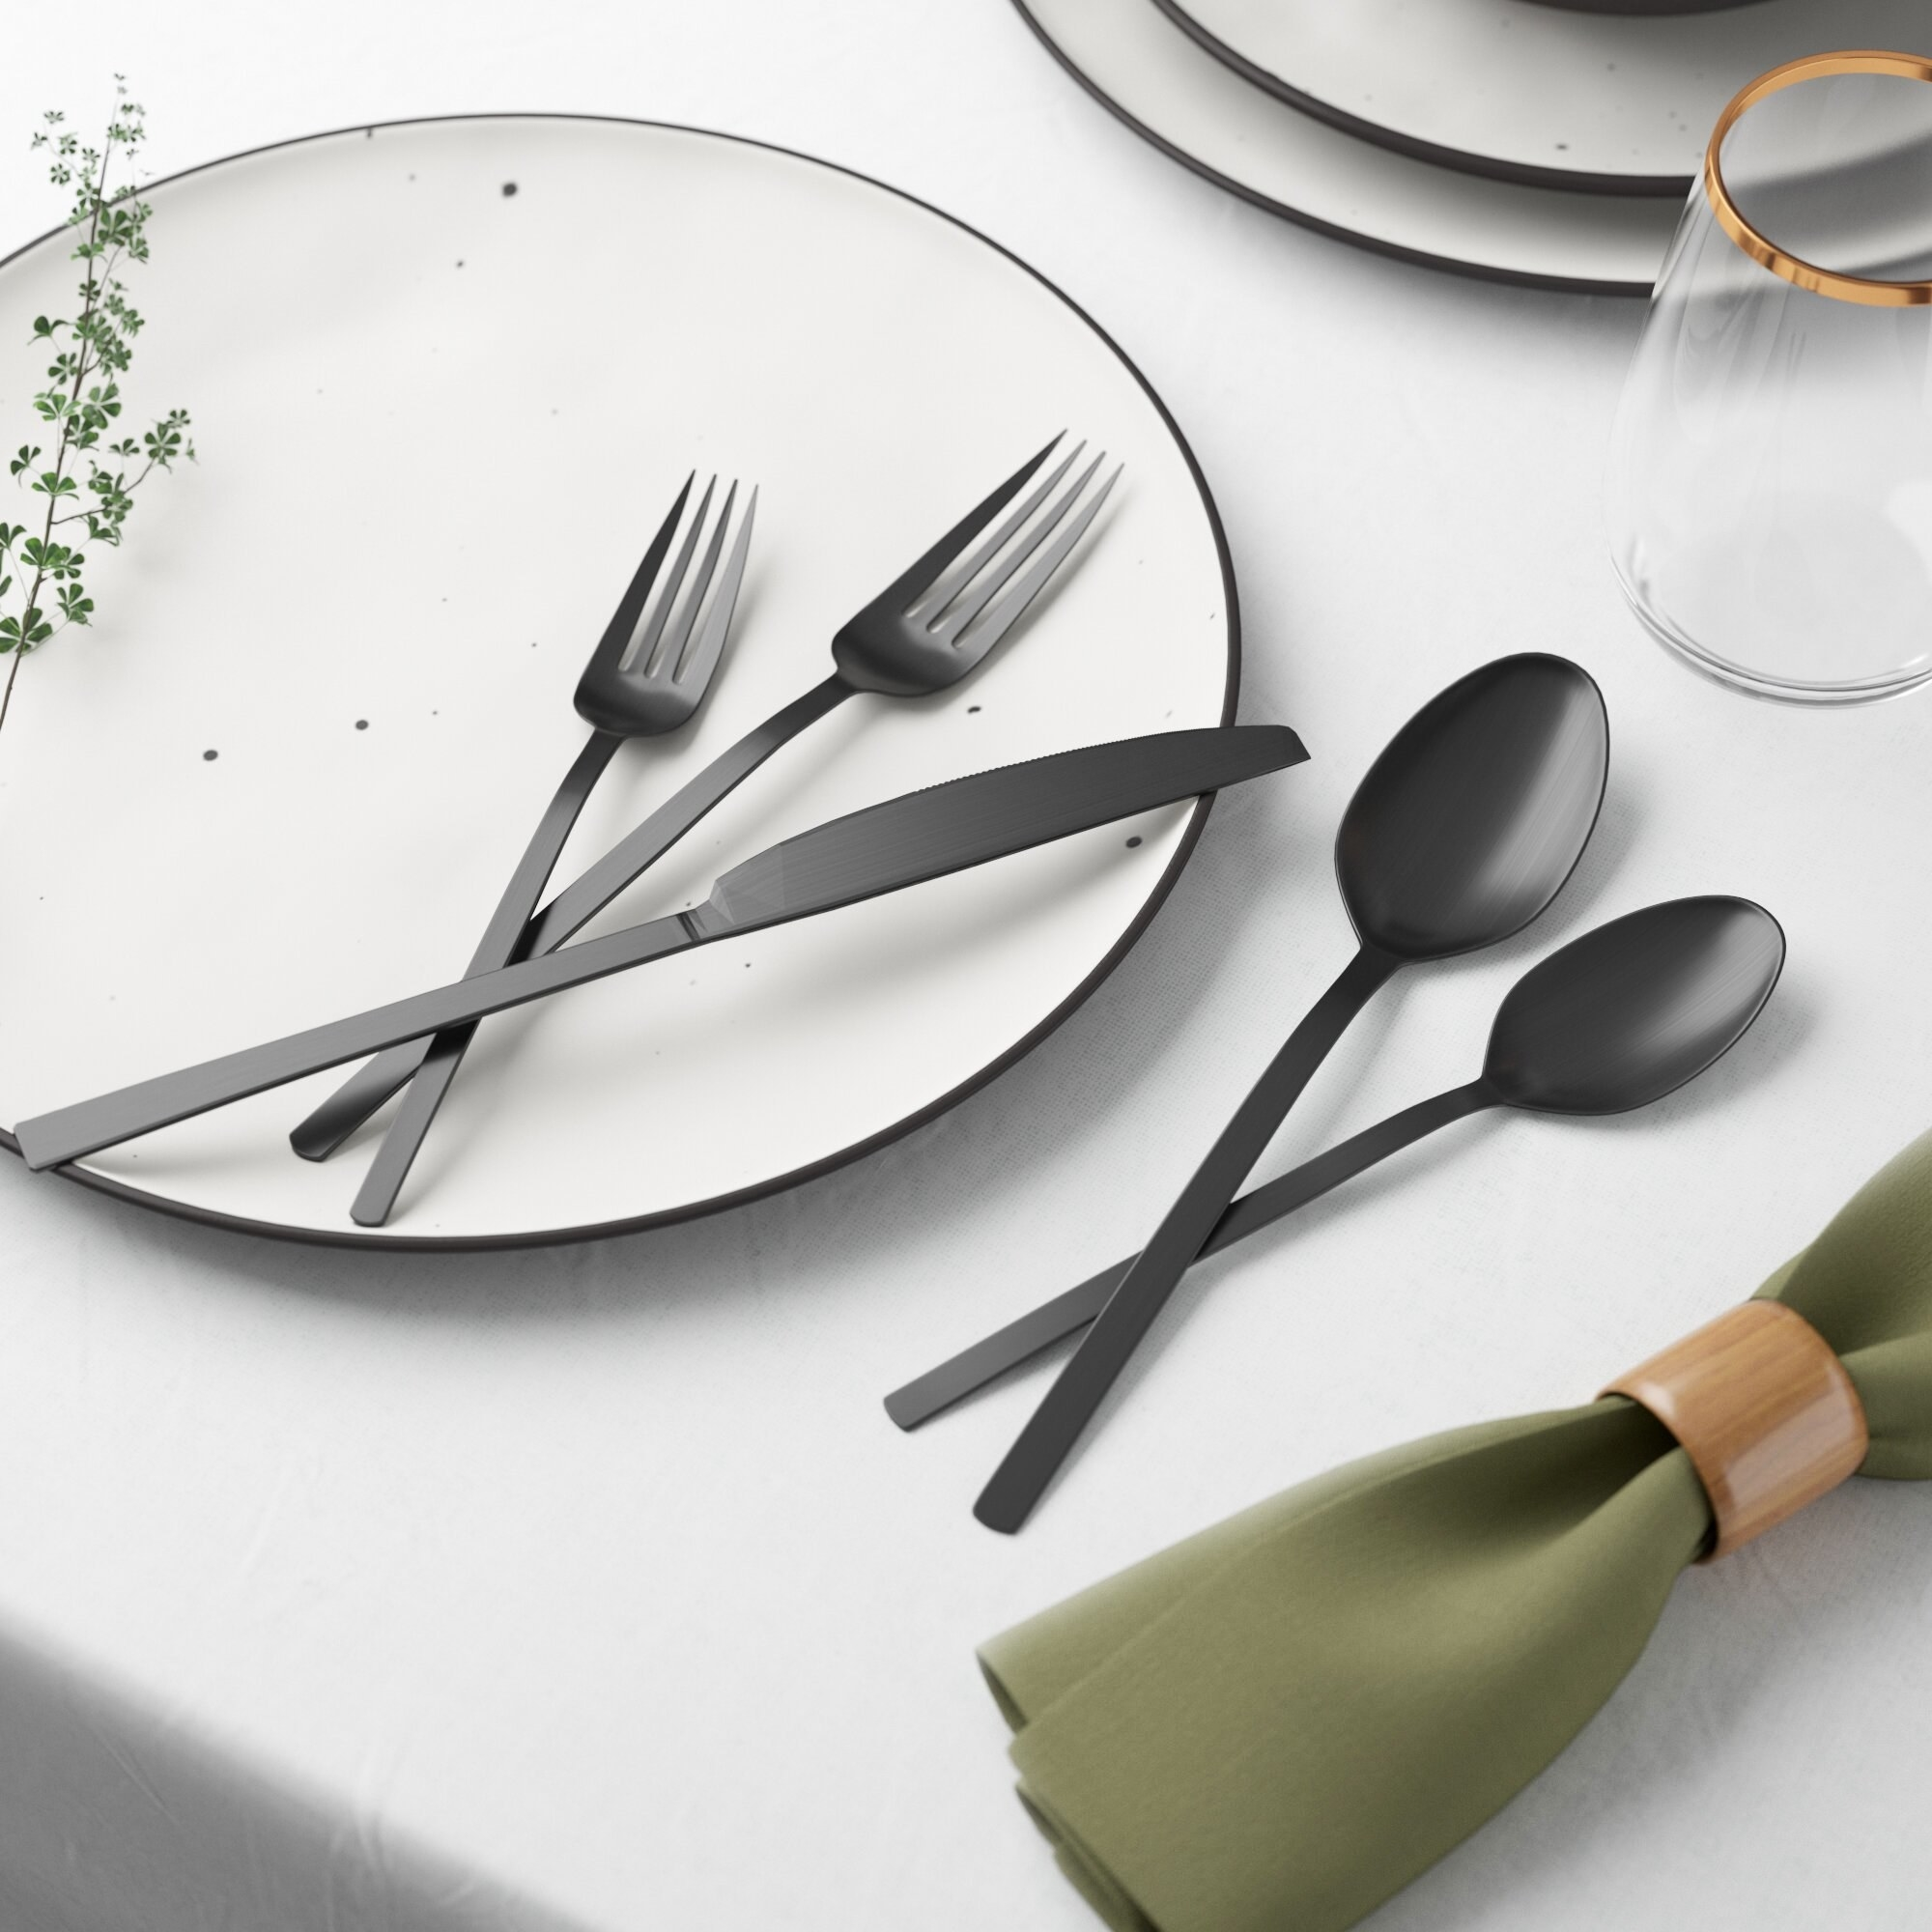 Black forks, spoons and a knife set up on top of a table with a white plate and green napkin